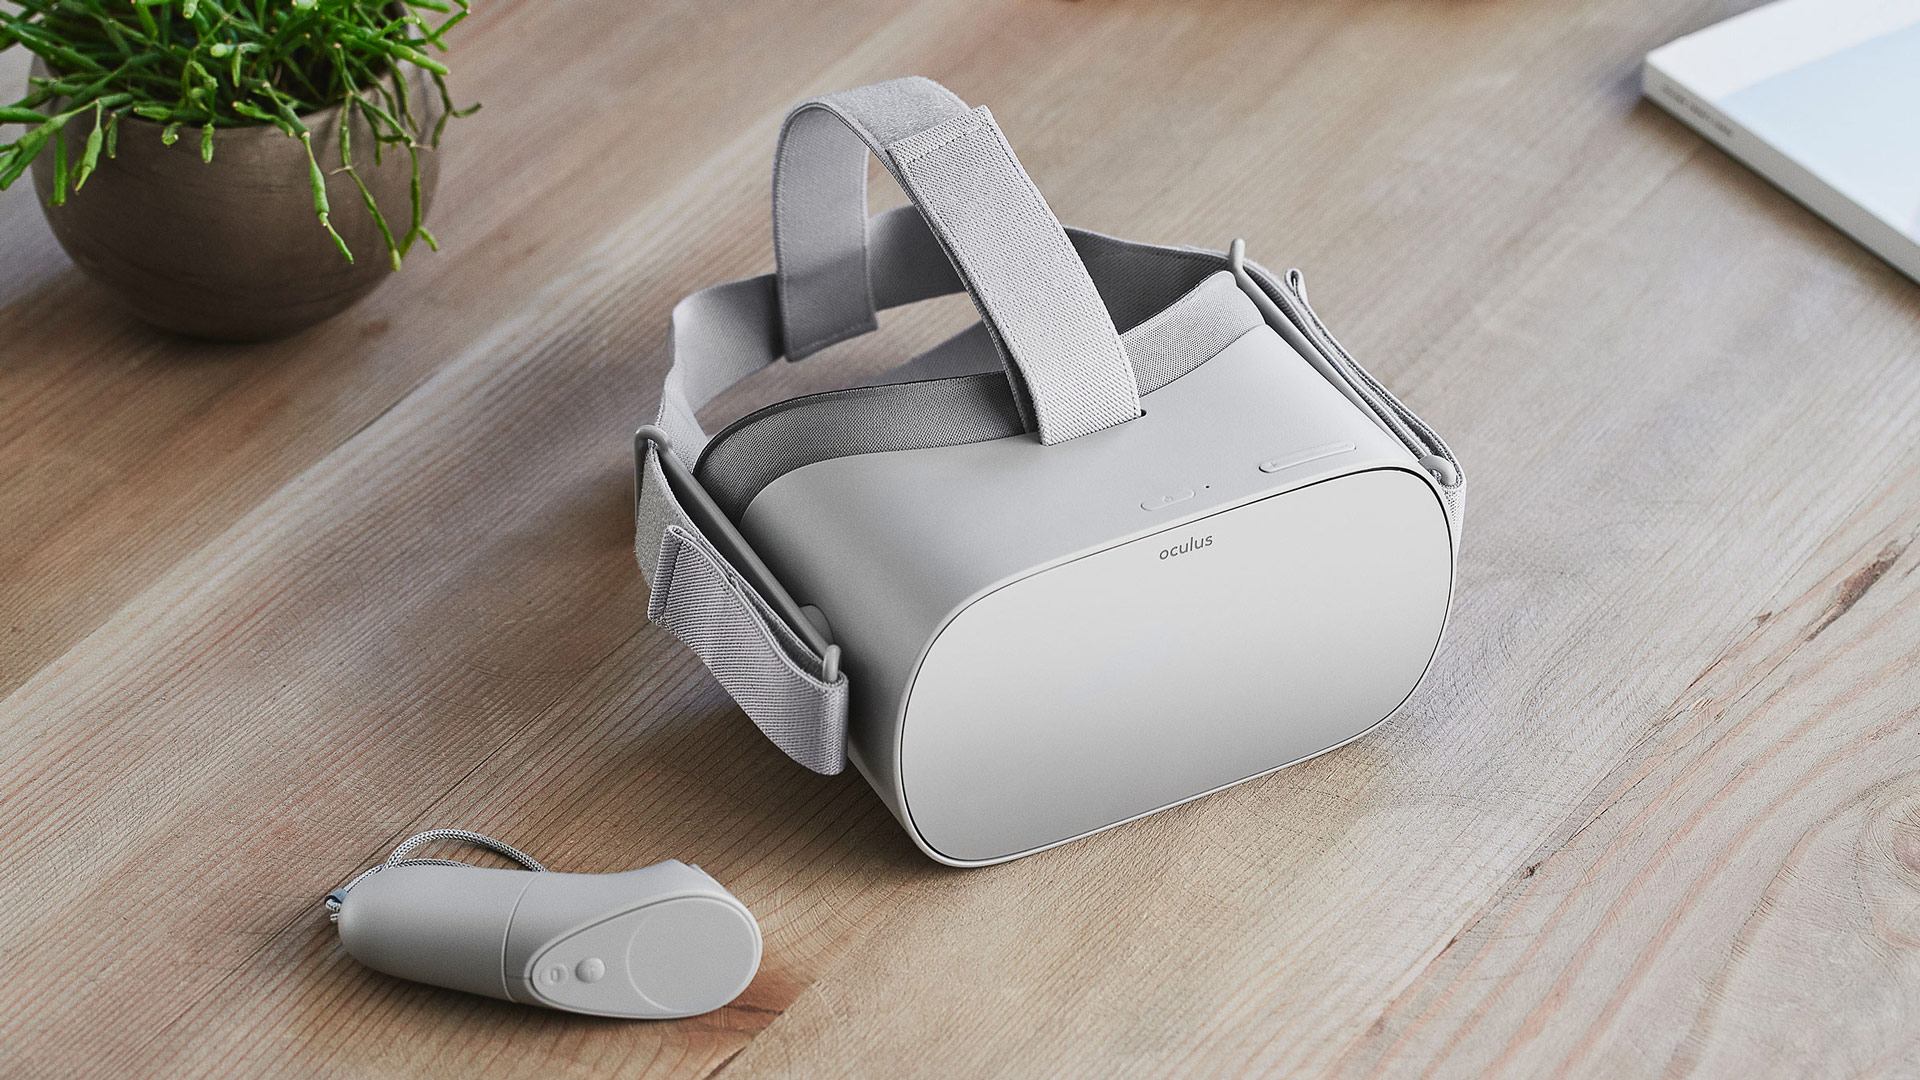 Oculus Go Beats Out Nintendo Switch & More as Amazon Top Seller